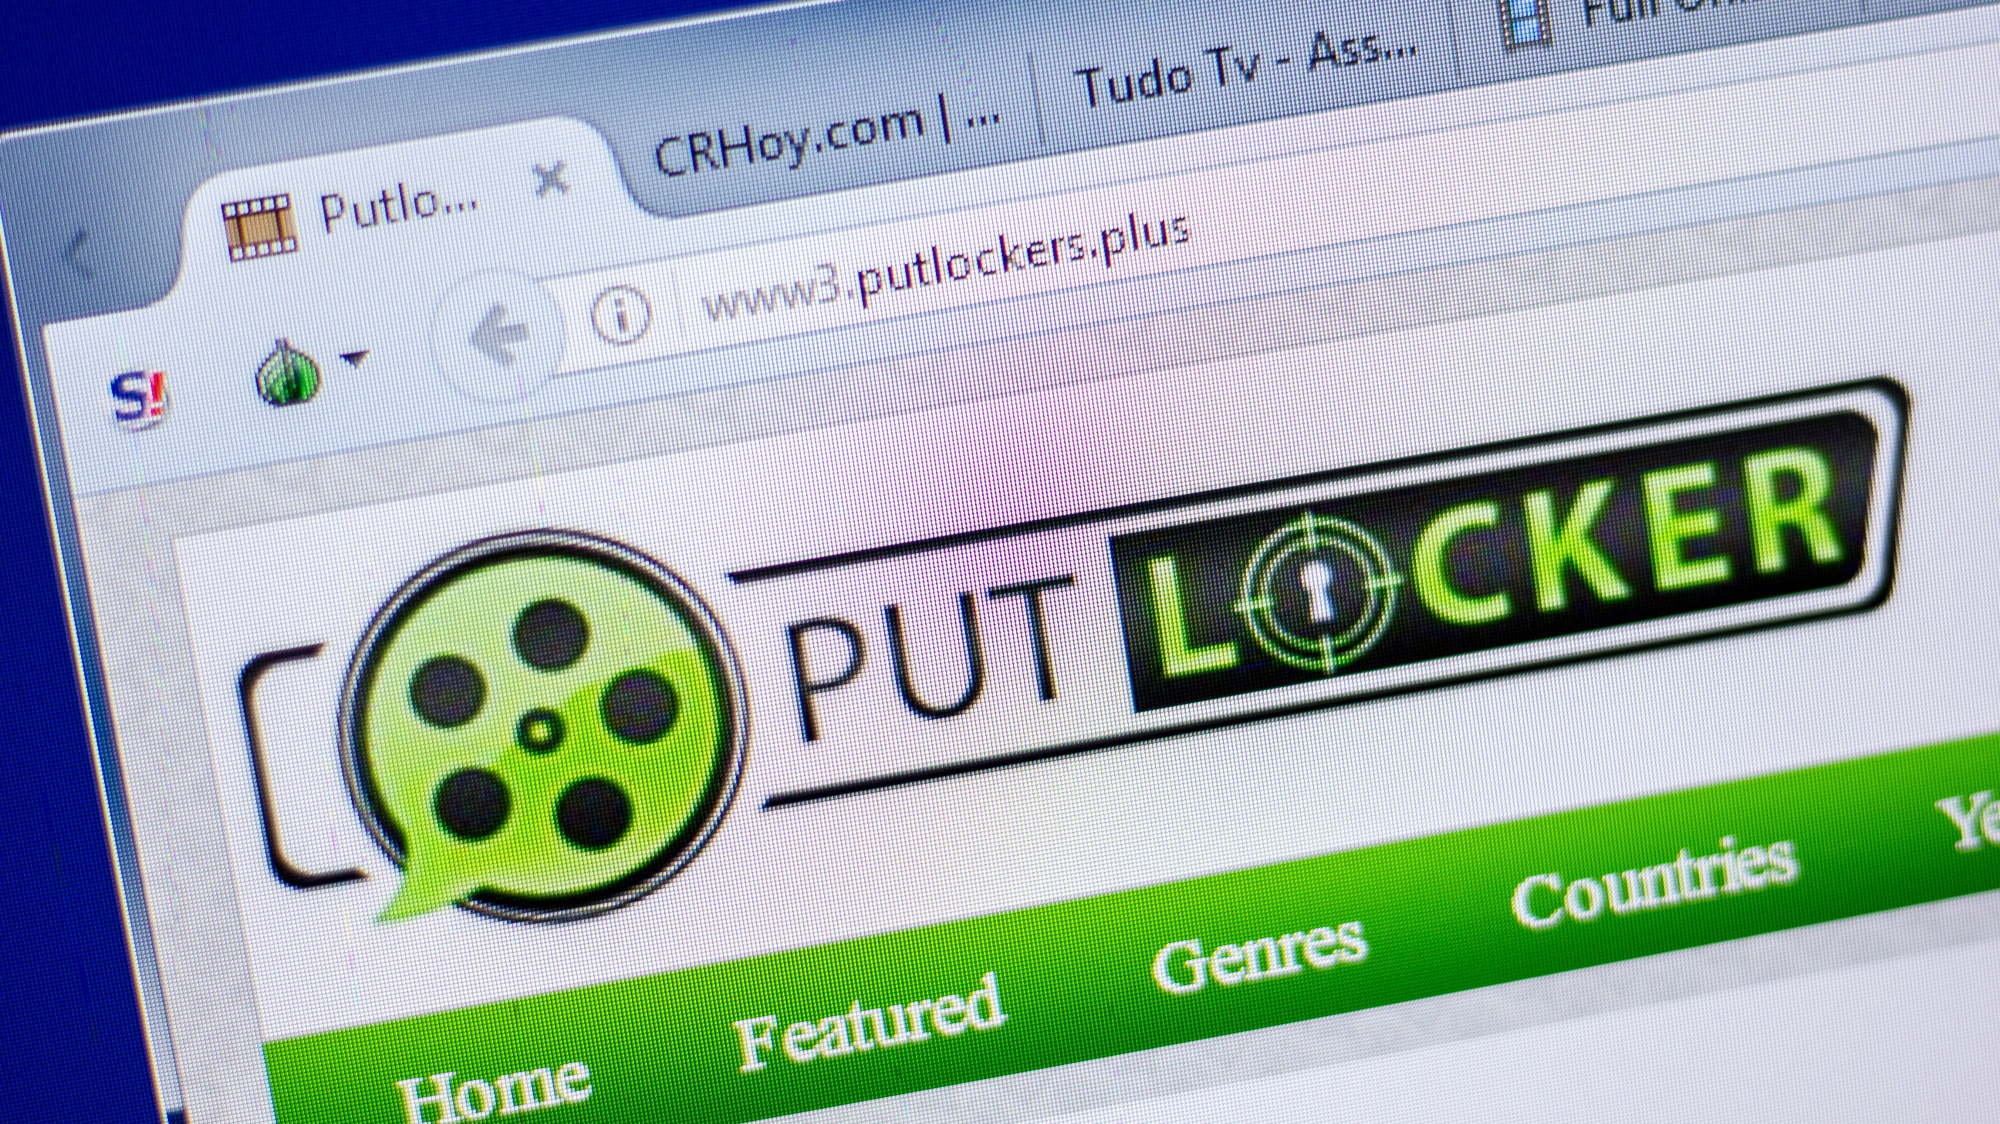 The best legal Putlocker alternatives in 2020 | Tom's Guide